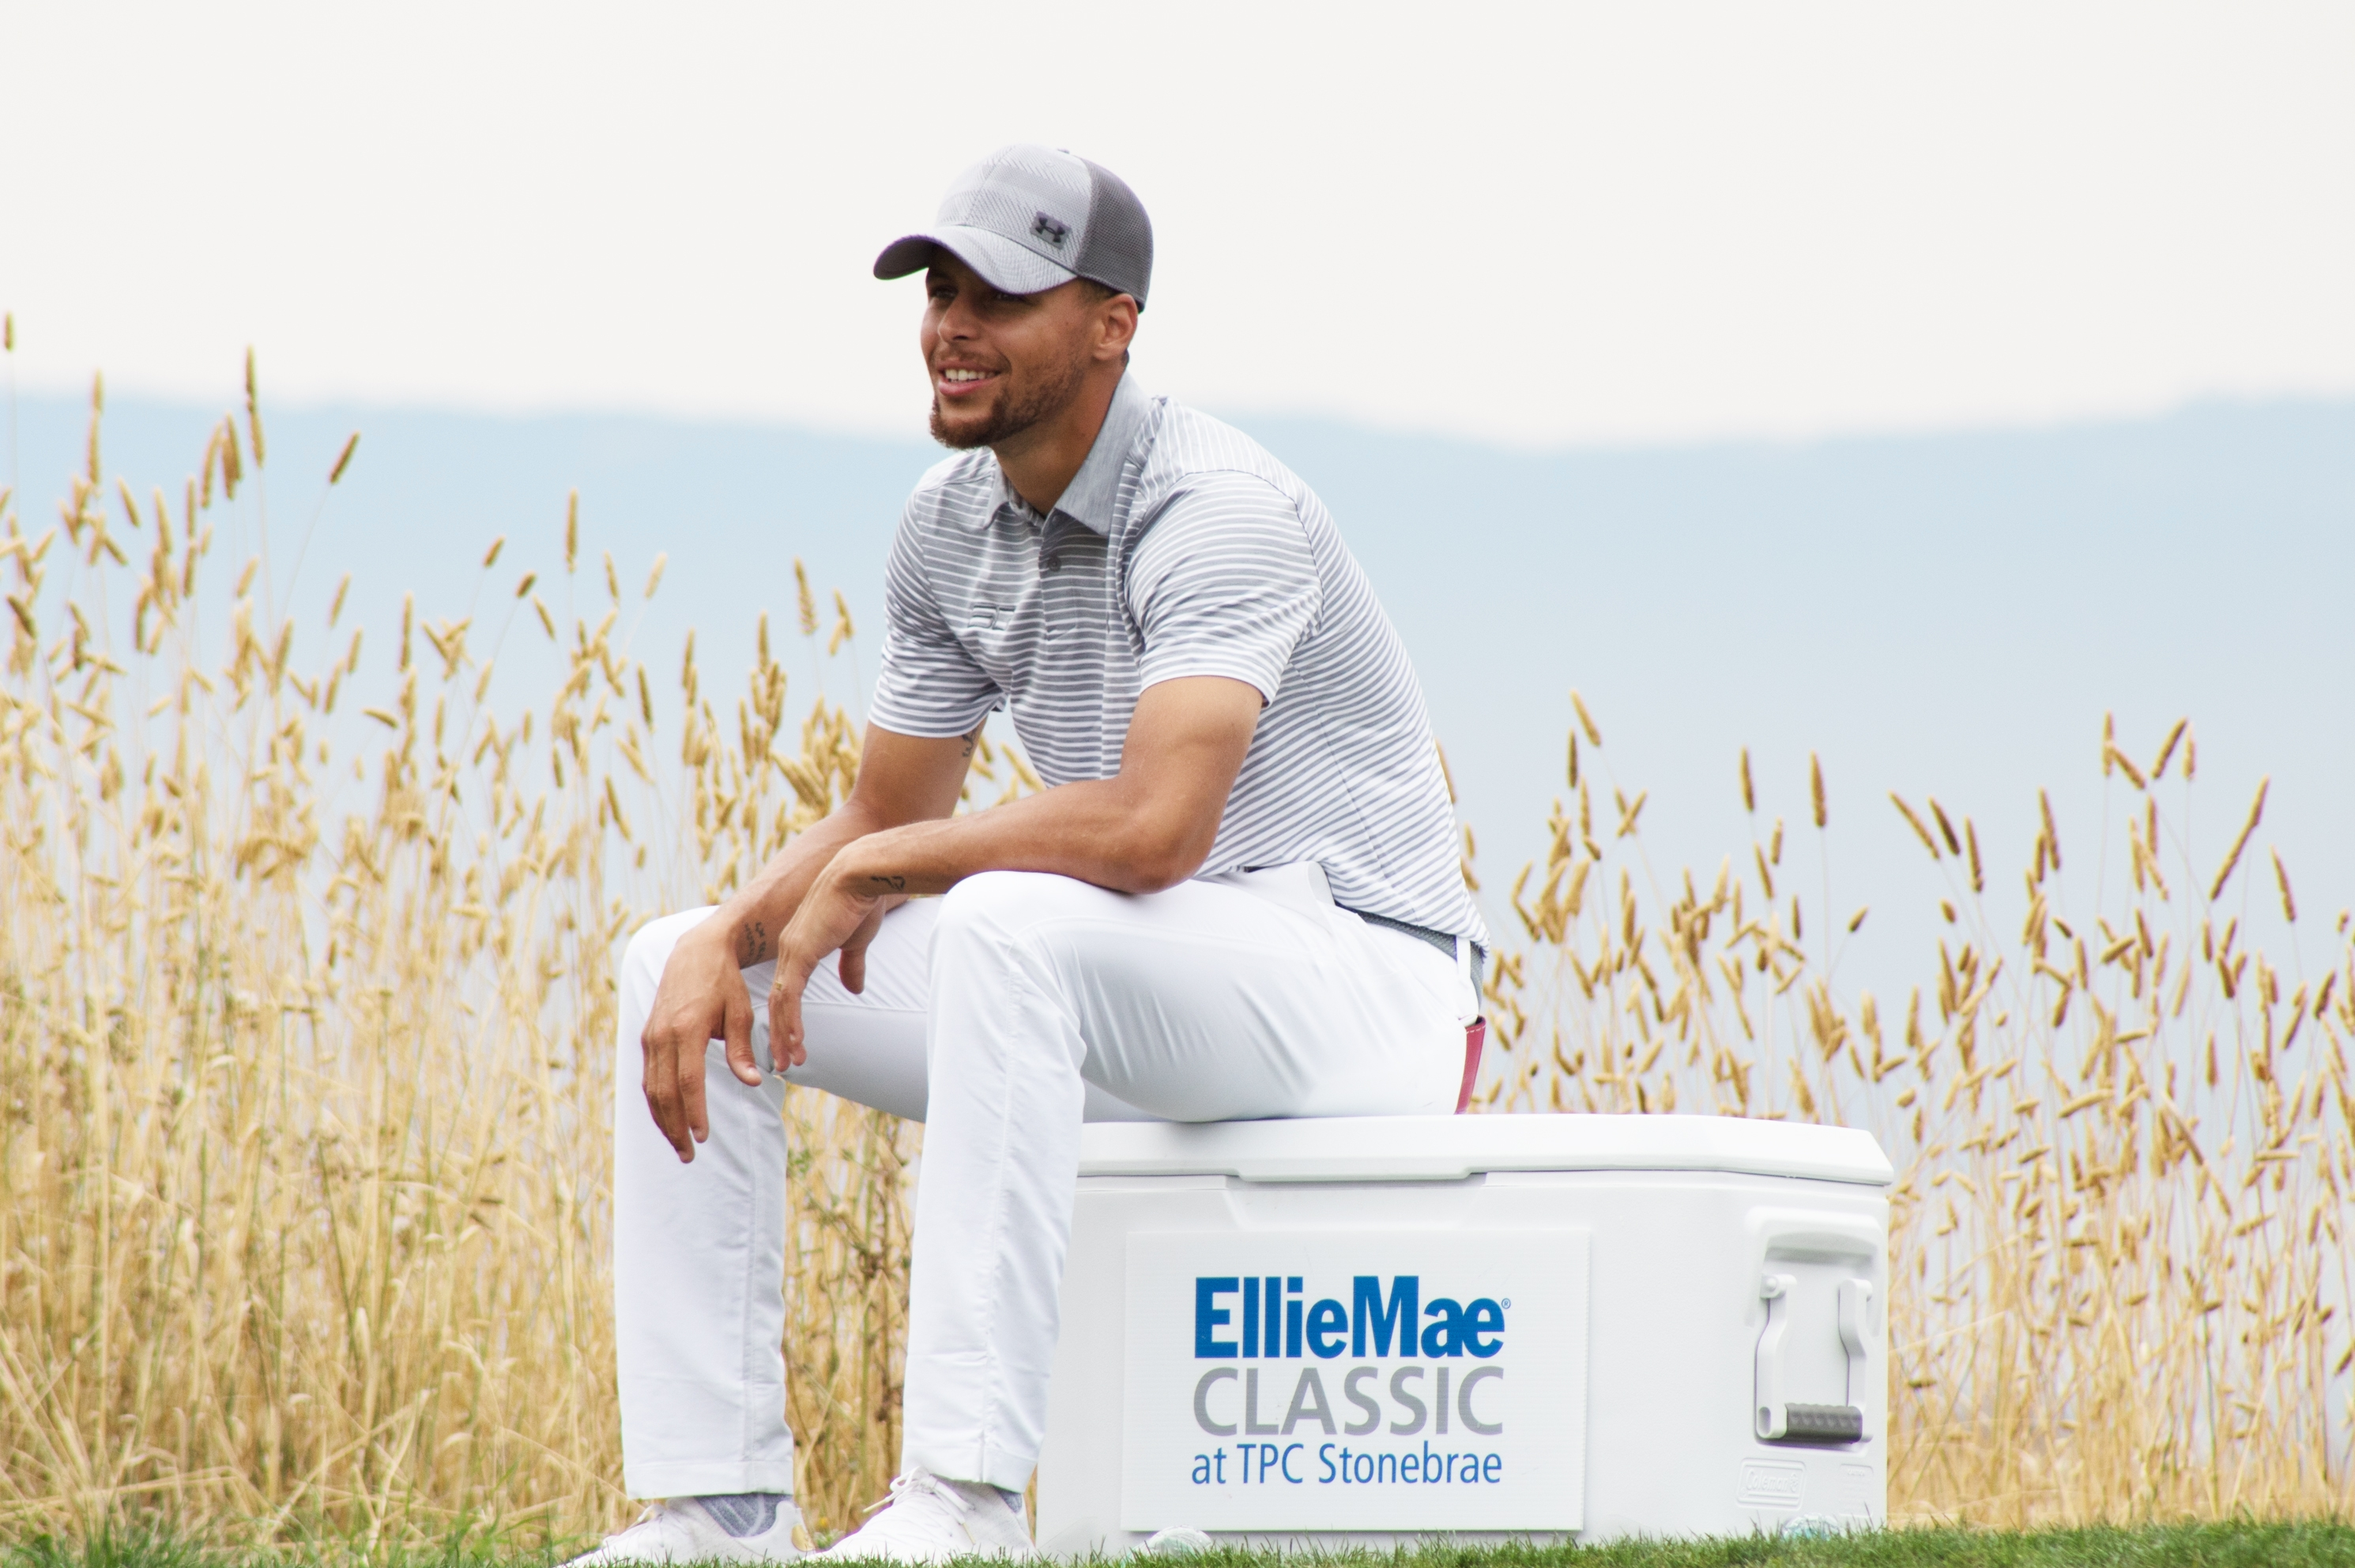 See Steph Curry Play in This Year's Ellie Mae Classic